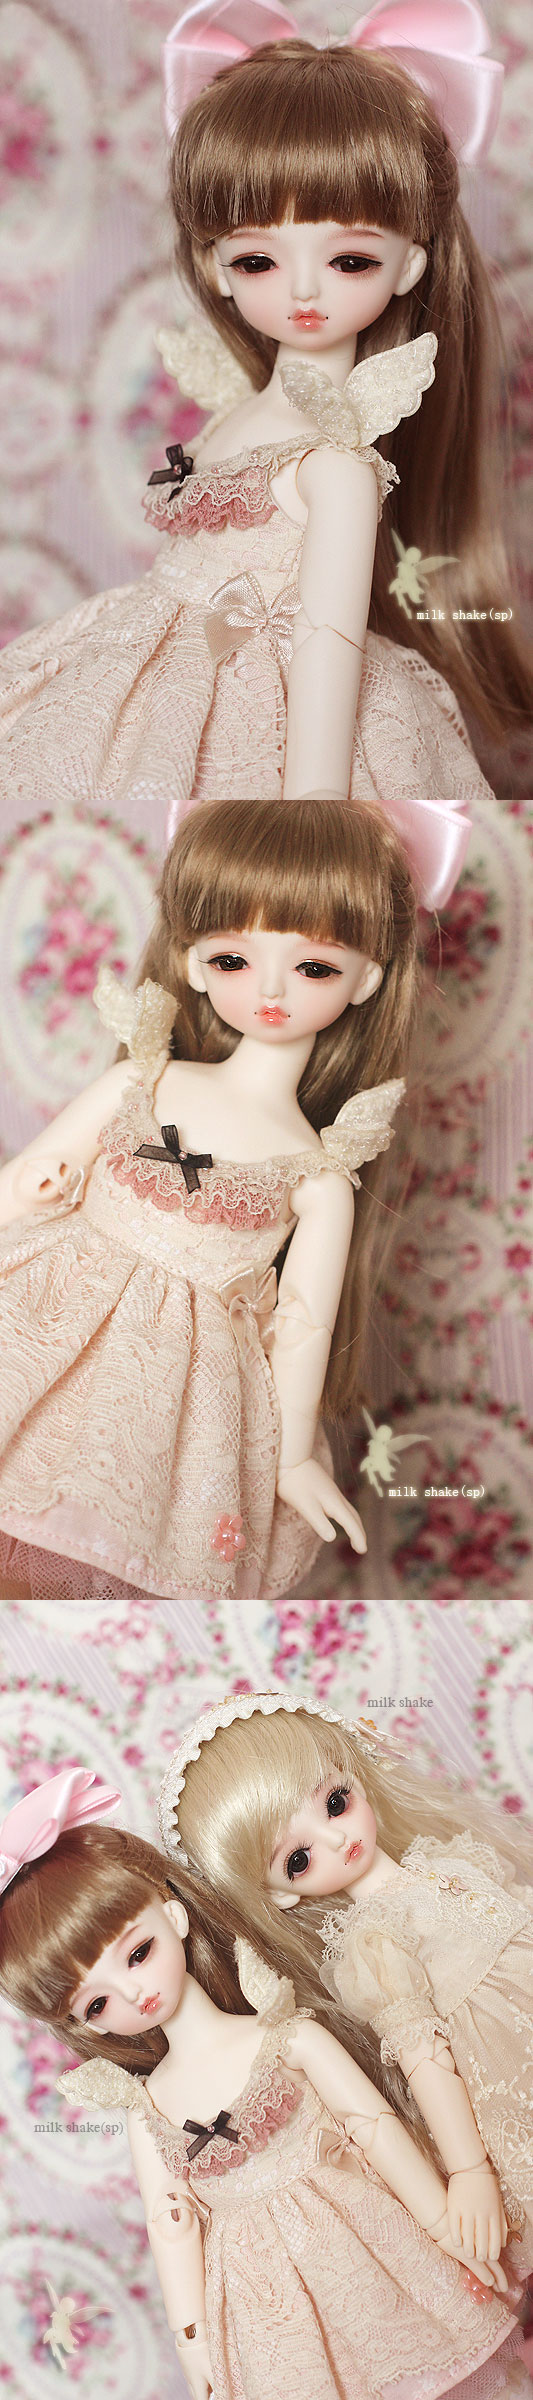 BJD Naixi-SP 27cm Girl Ball-jointed Doll